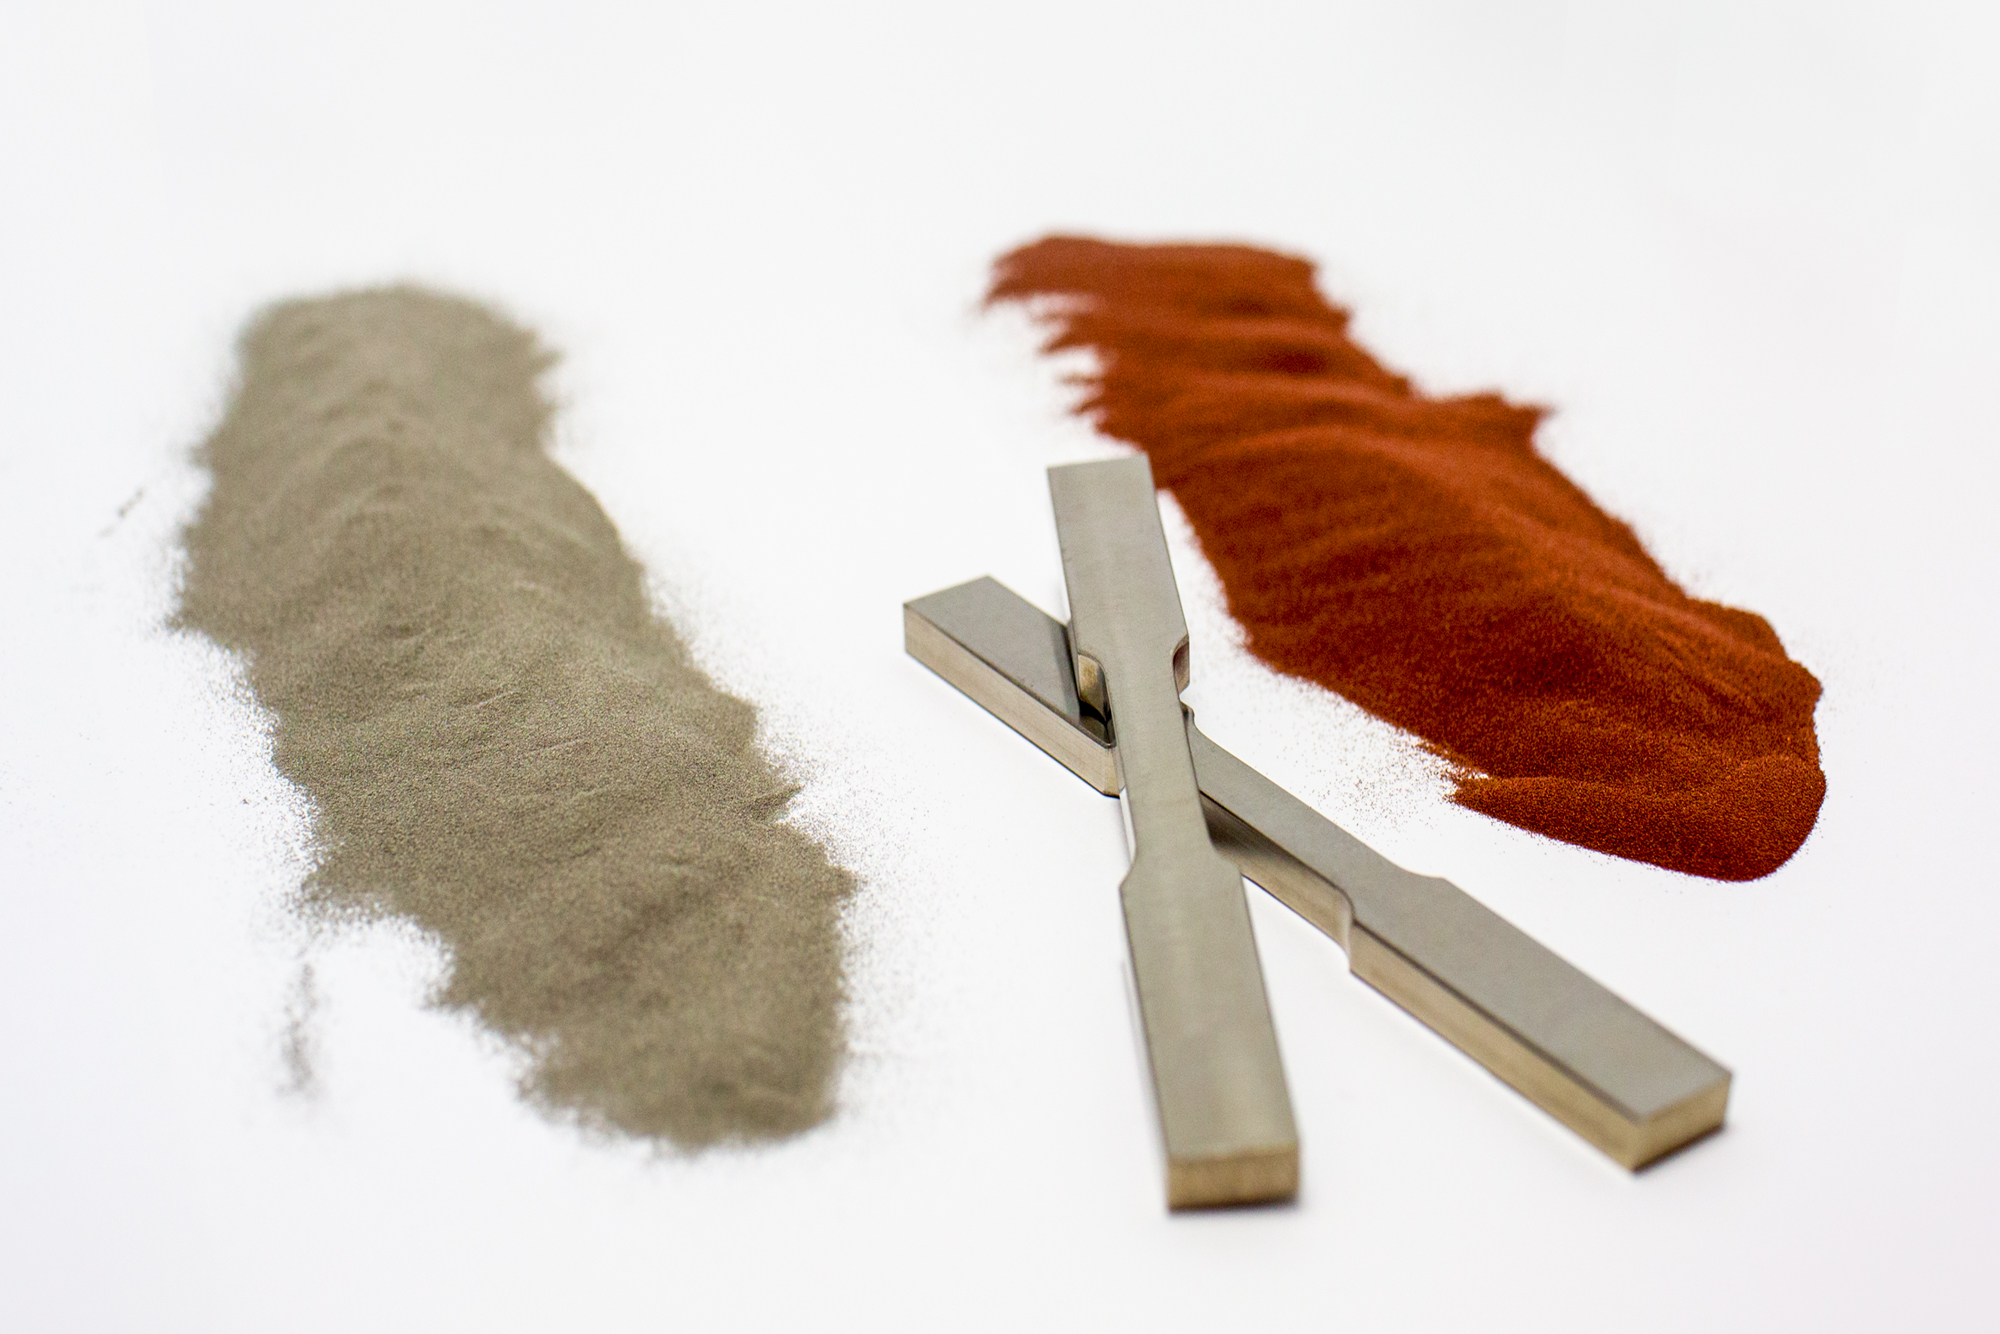 Titanium and copper powder with 3D printed bars. Photo via RMIT.